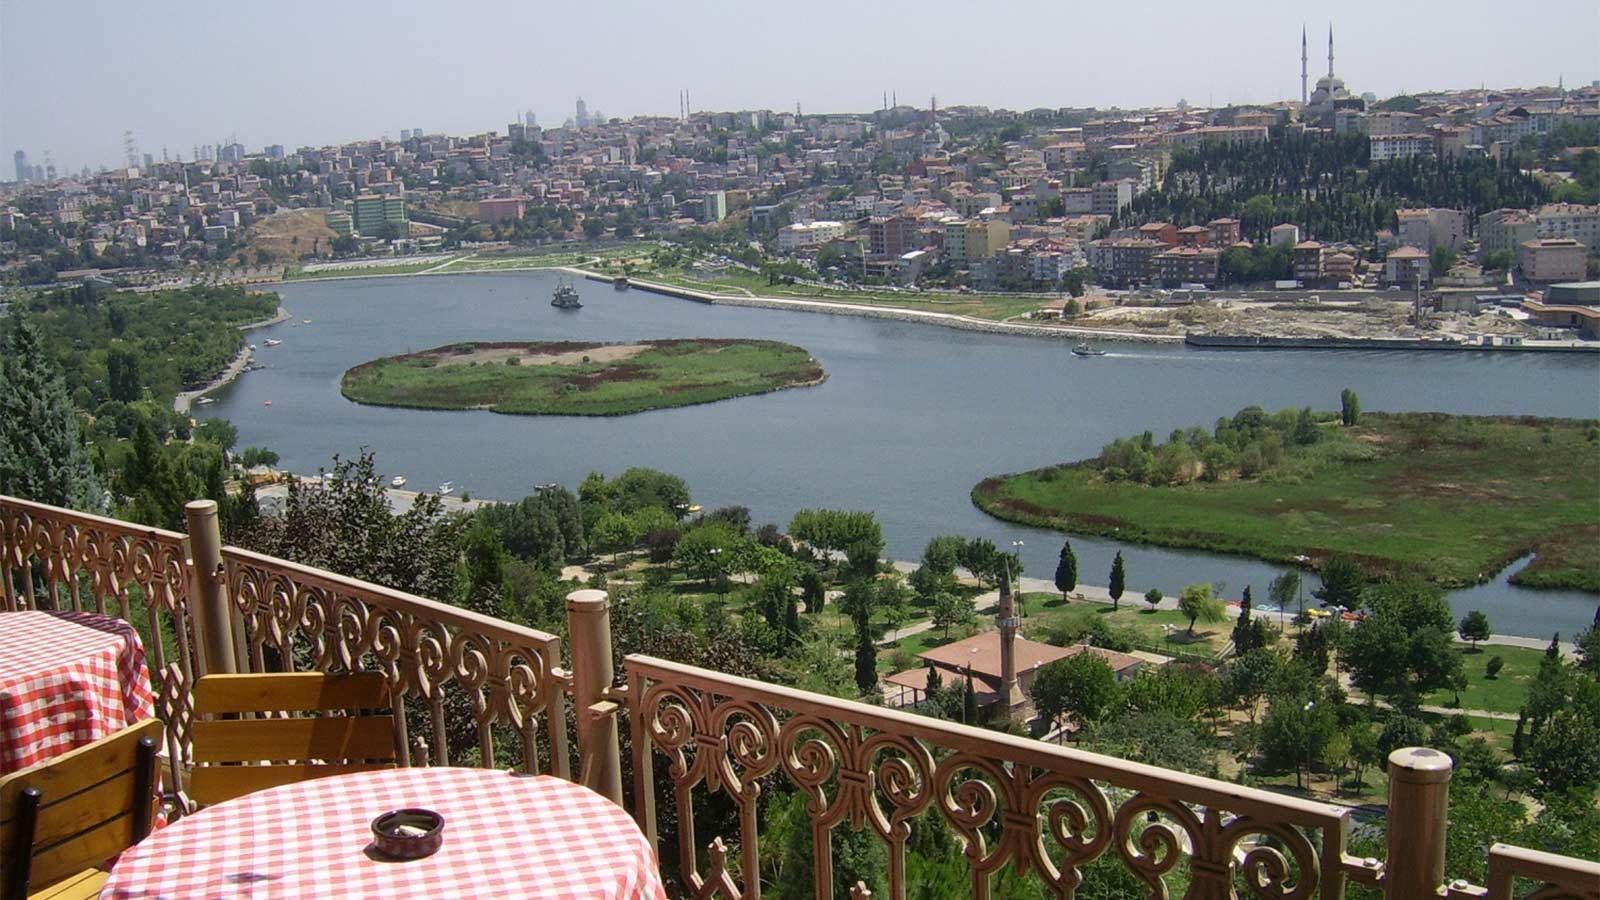 Day time view of the city of Istanbul